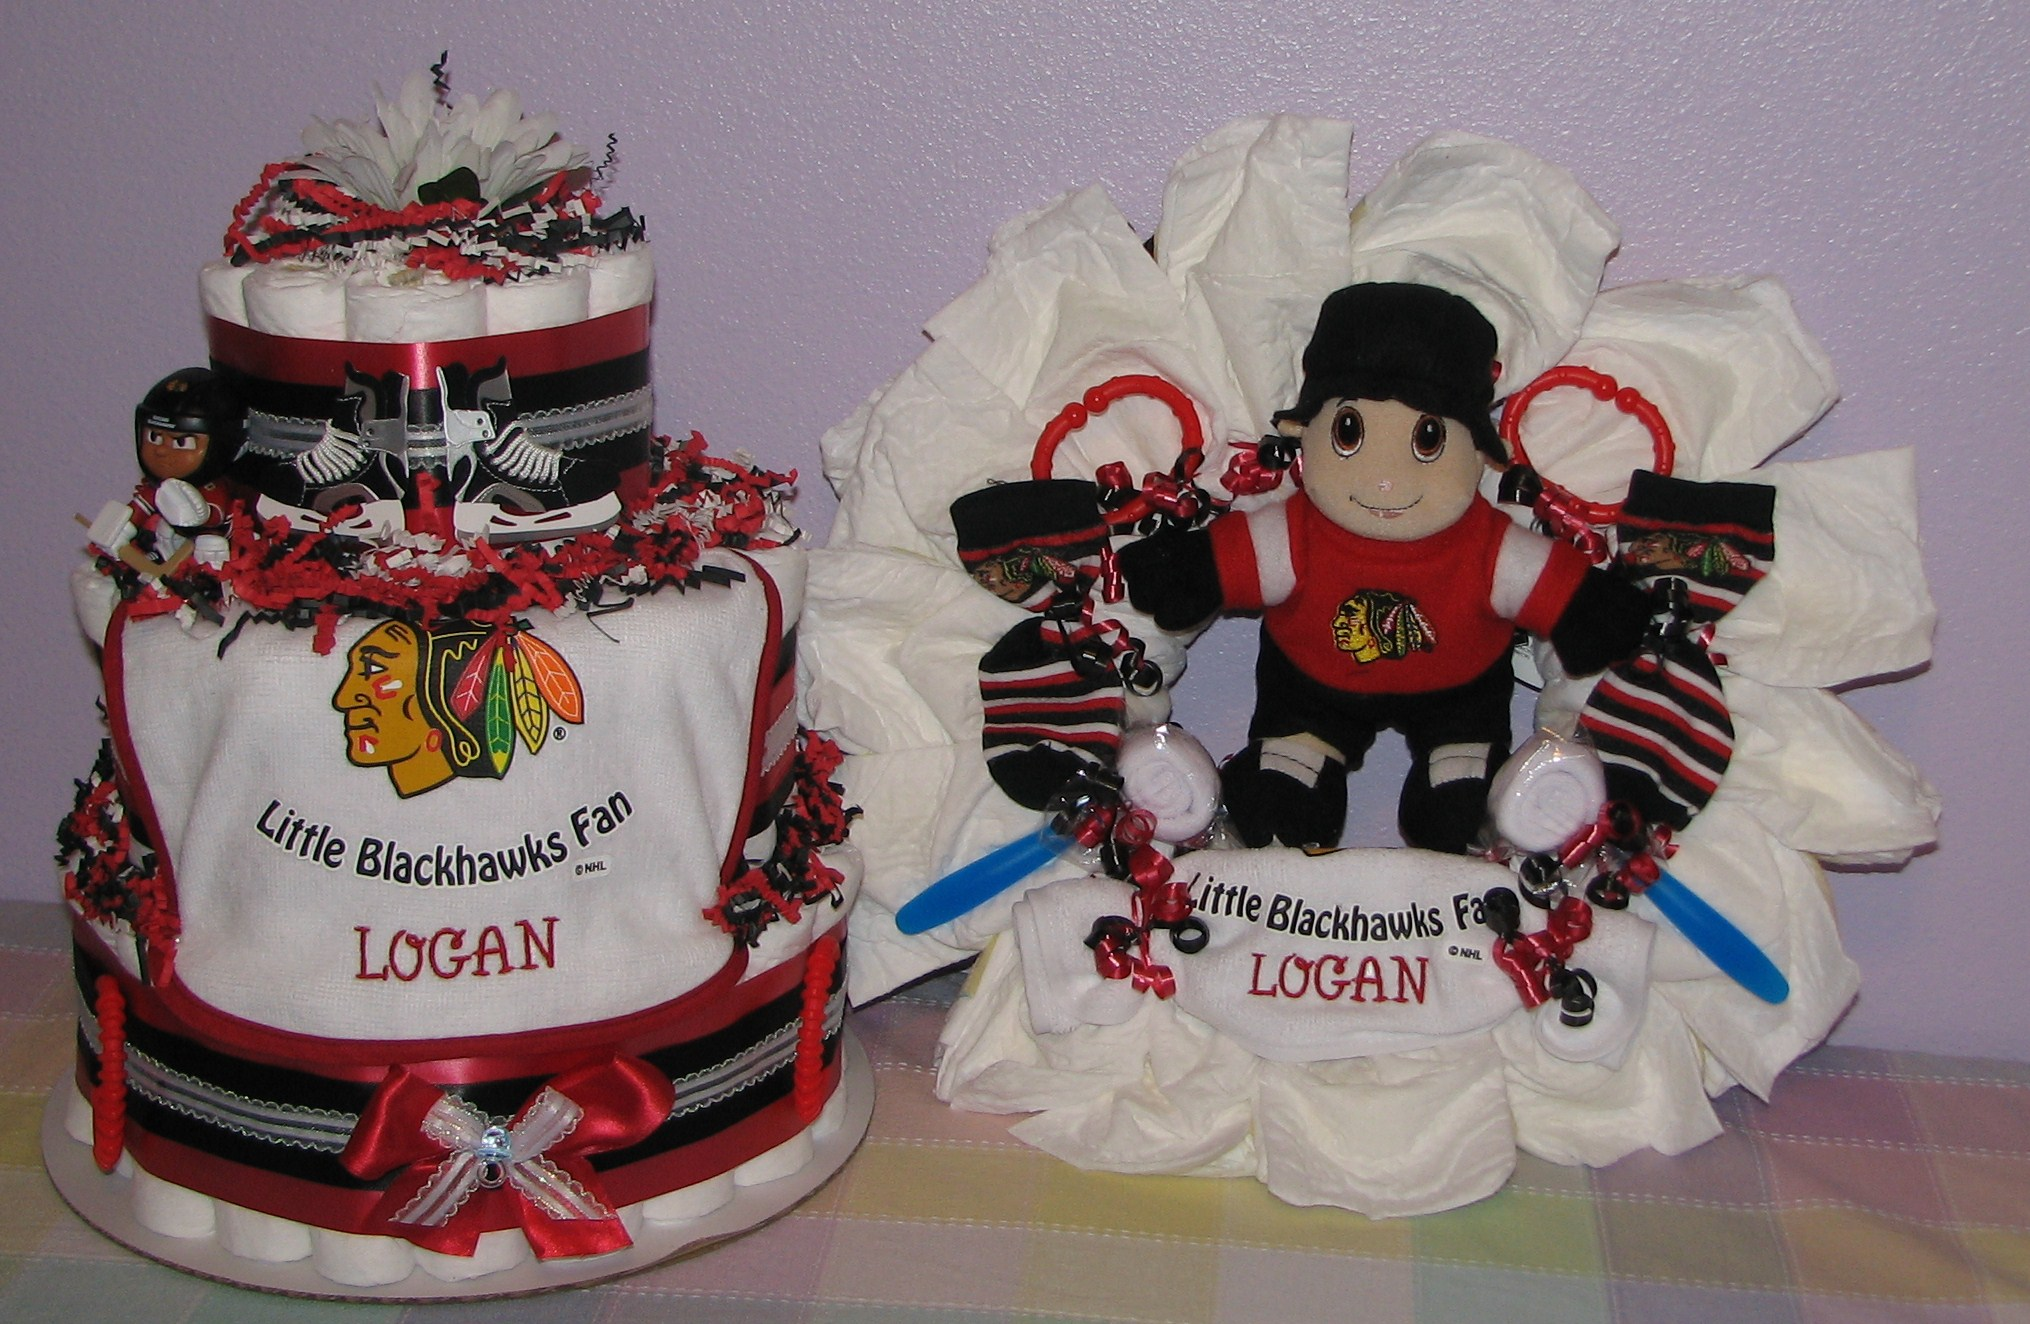 Blackhawks-Baby-Gifts.JPG - Chicago Blackhawks Diaper Cake & Diaper Wreath